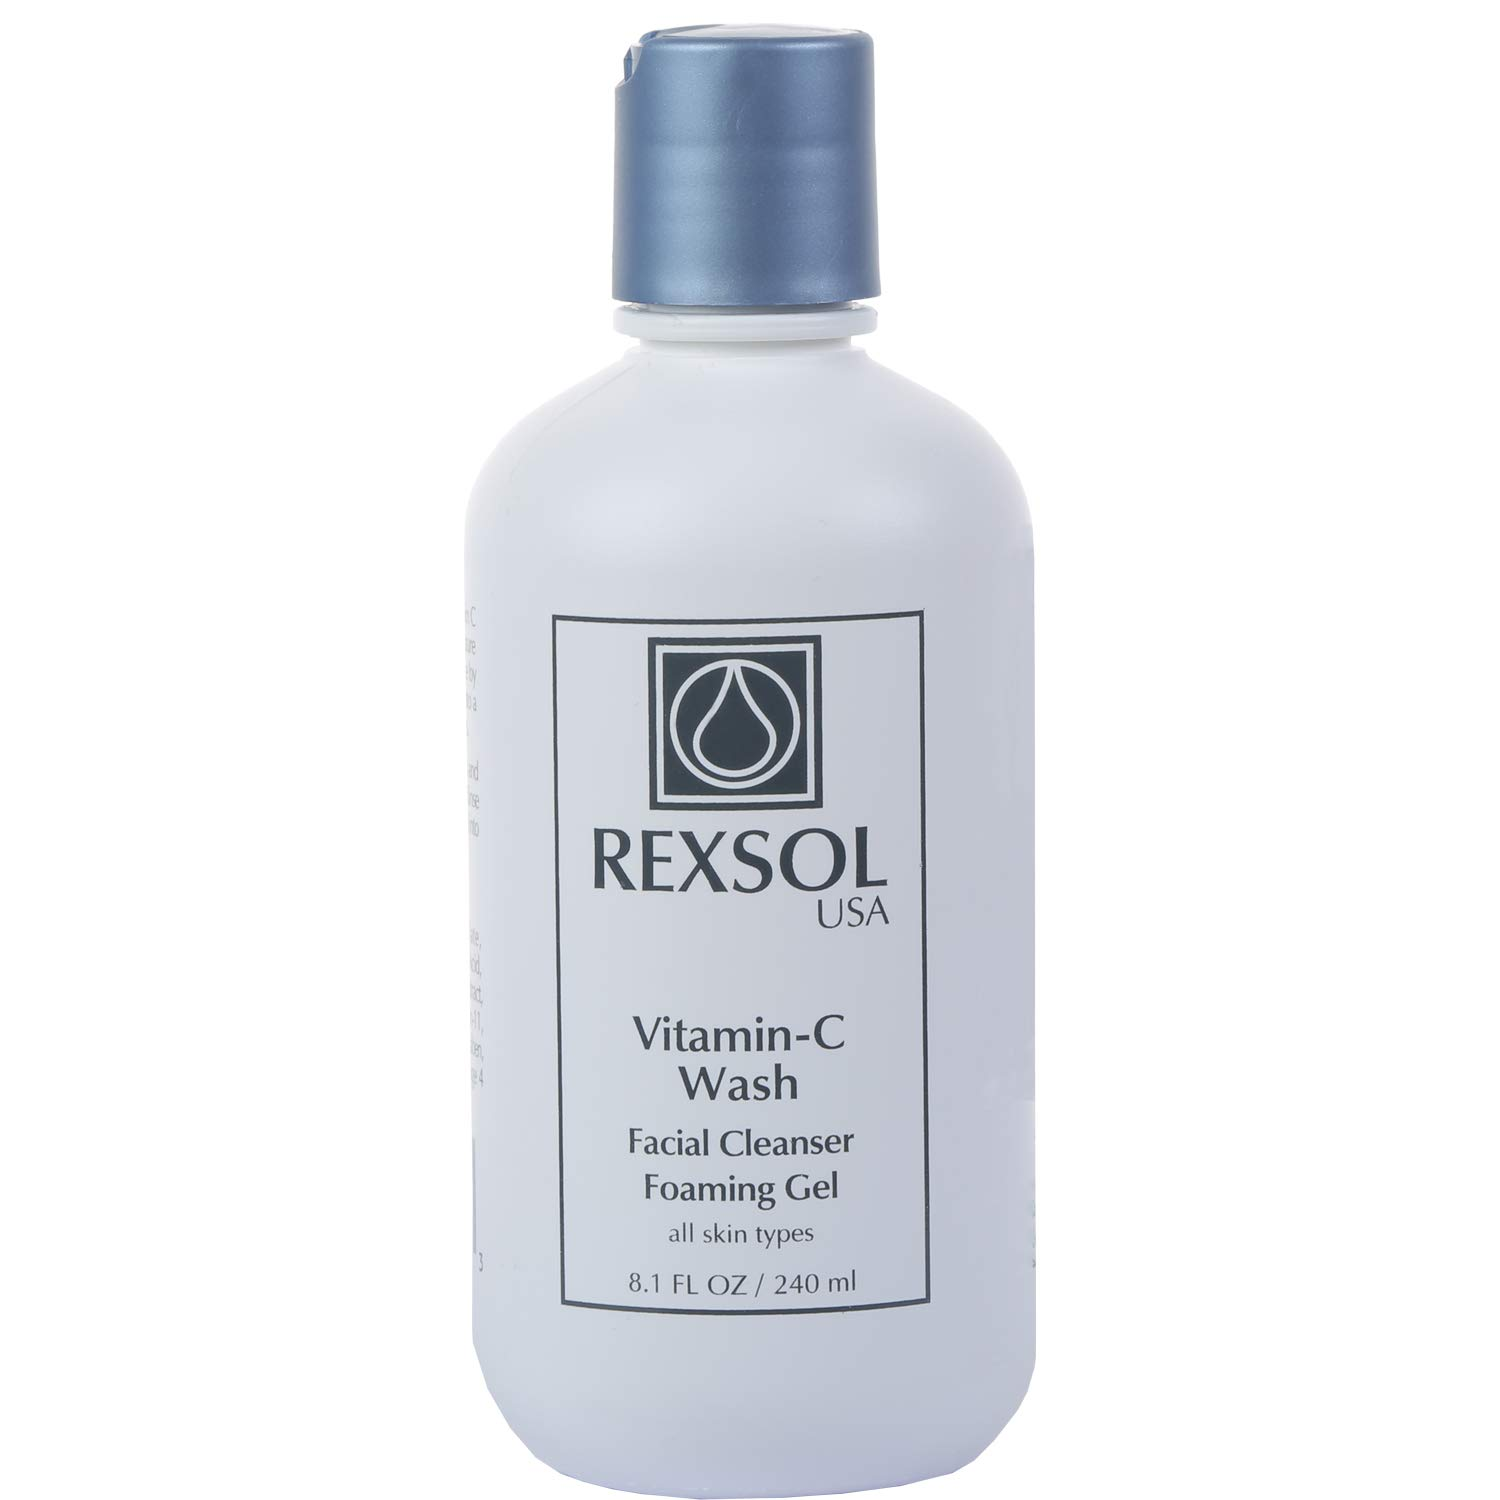 REXSOL Vitamin C Wash Facial Cleanser Foaming Gel | Vitamin C Face Wash - Natural Face Wash & Cleanser For Face | Skin Routine Anti Aging Daily Face Wash For Women With Sensitive Skin | Vit A,E-8.1 OZ